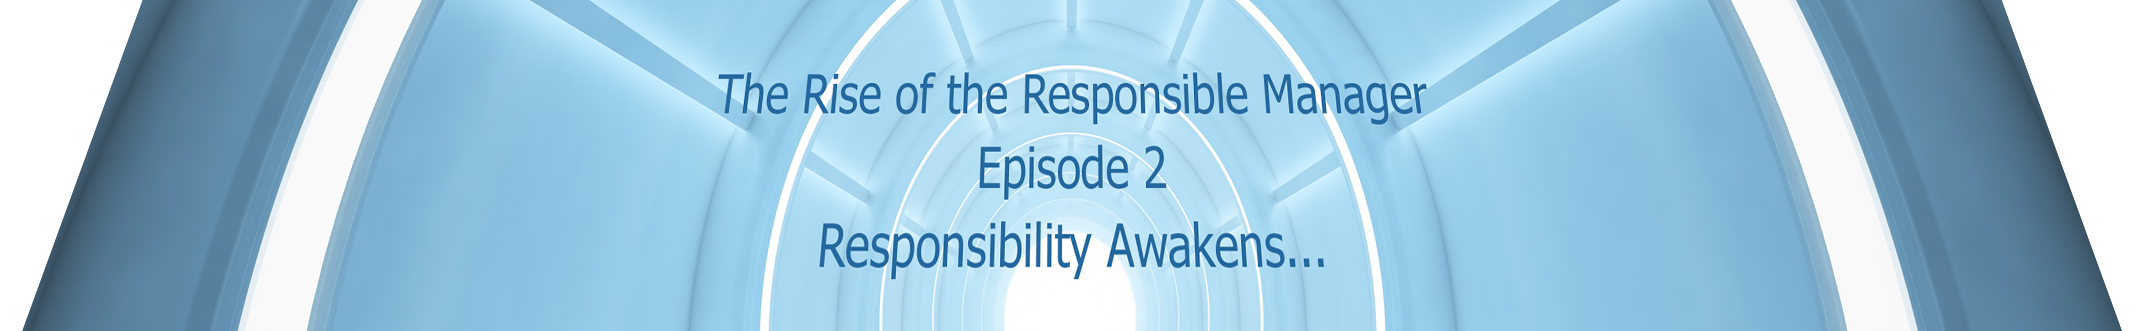 The Rise of the Responsible Manager Episode 2